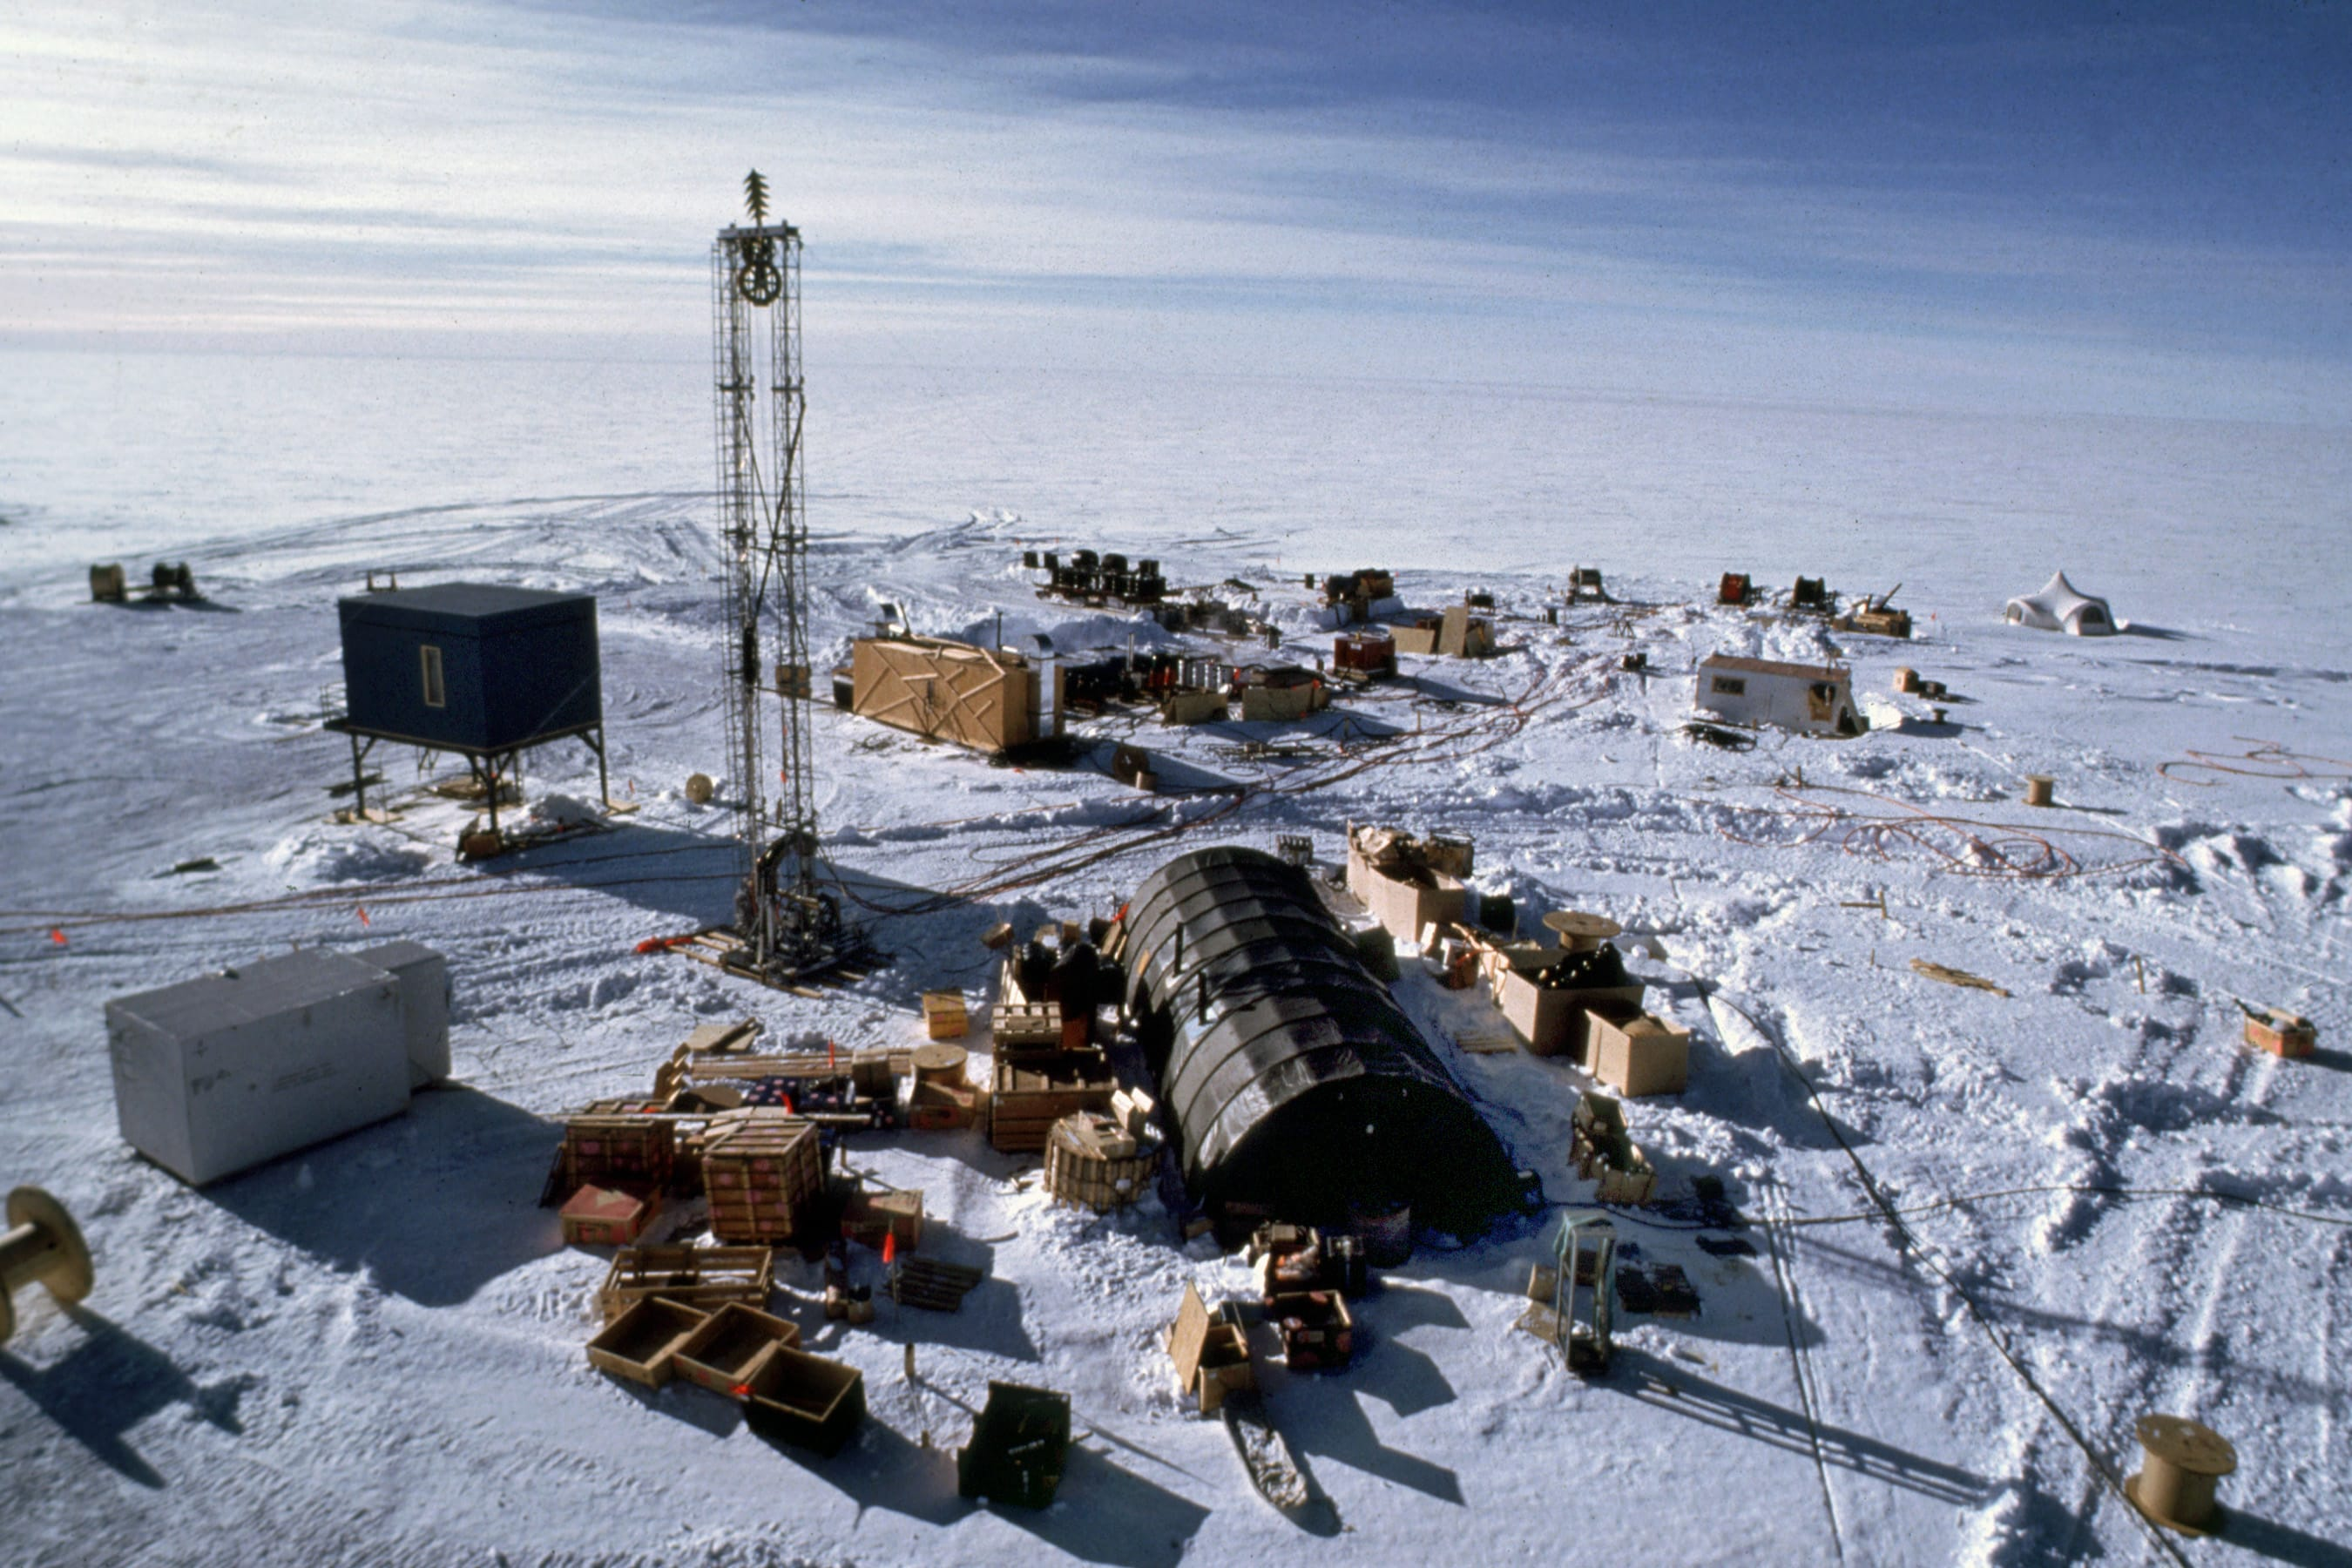 Supplies at the South Pole